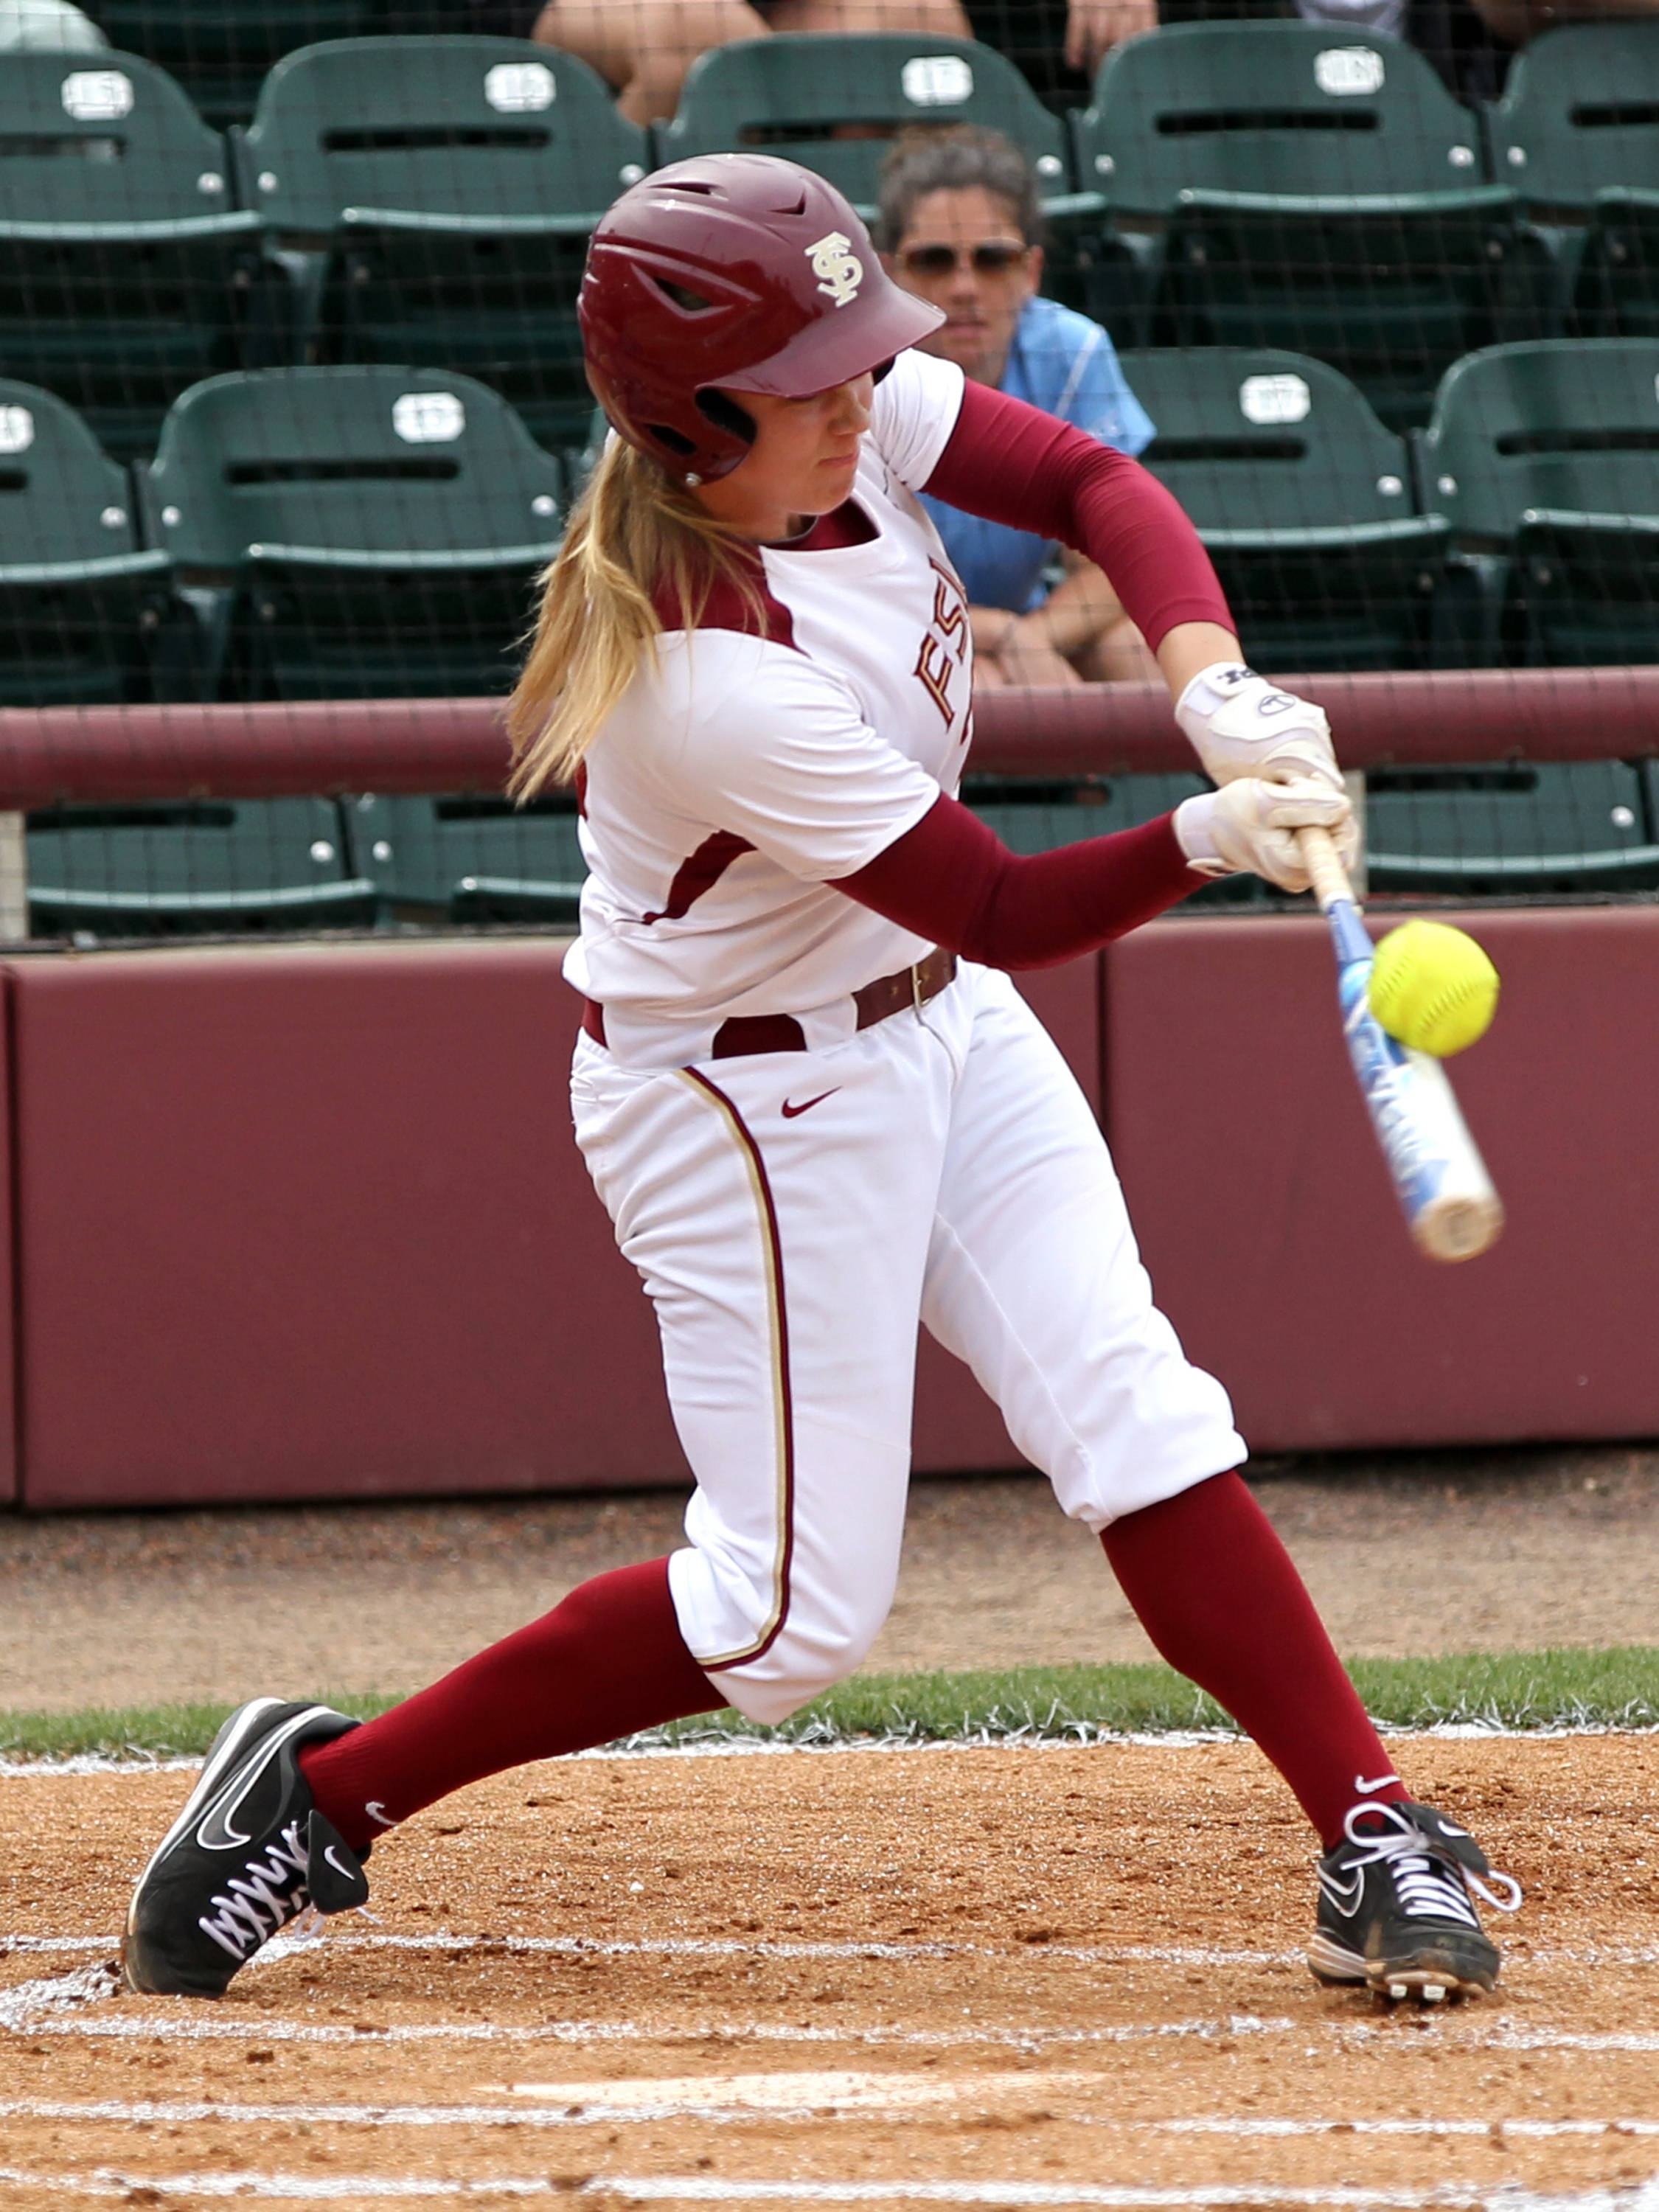 Kelly Hensley, FSU VS NC, ACC Championship Semifinals, Tallahassee, FL,  05/10/13 . (Photo by Steve Musco)